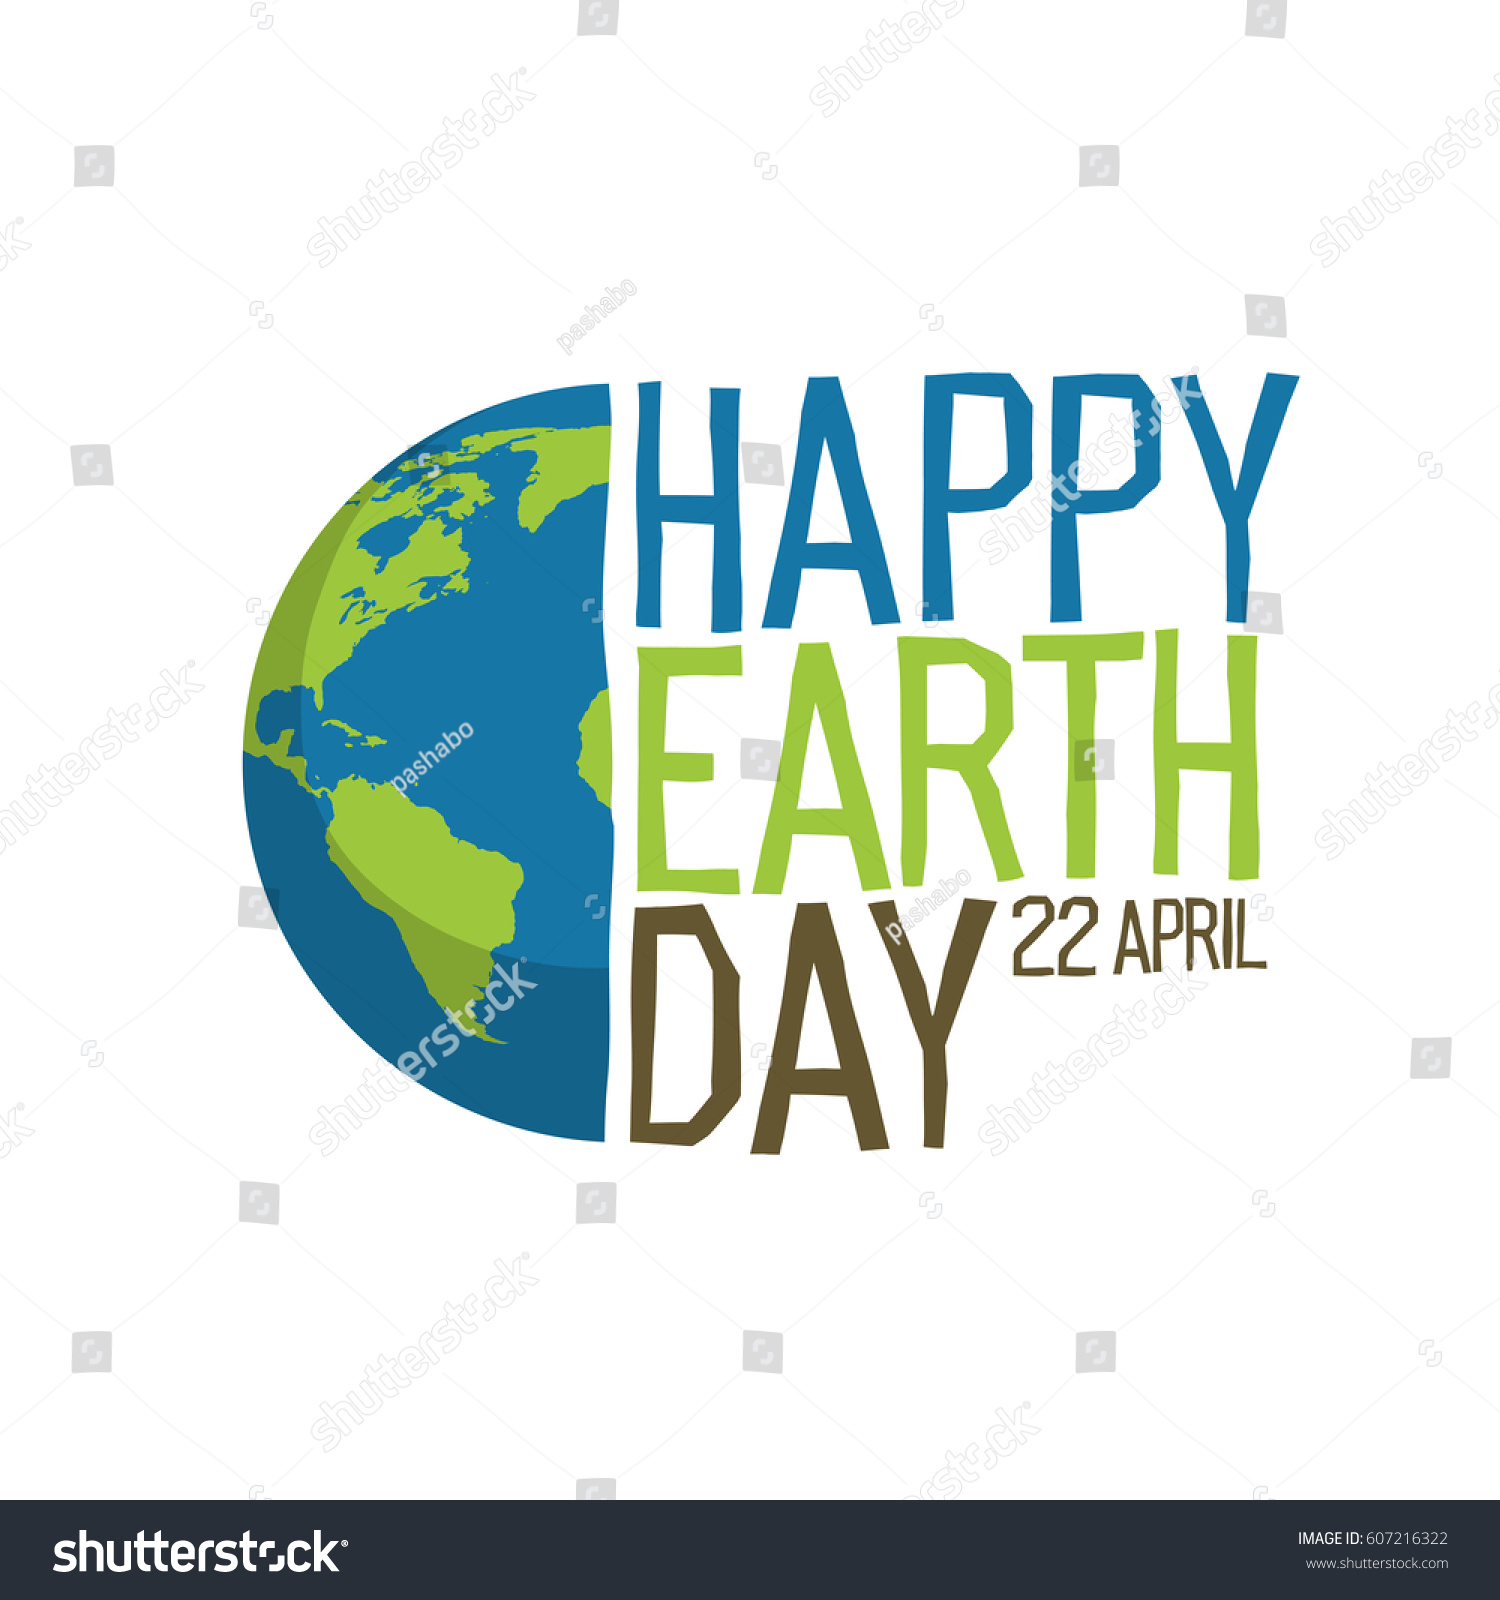 world earth day Earth day is observed every year on april 22 first celebrated in 1970, earth day is significant as it's a day of political action and civic participation towards preserving the planet people.